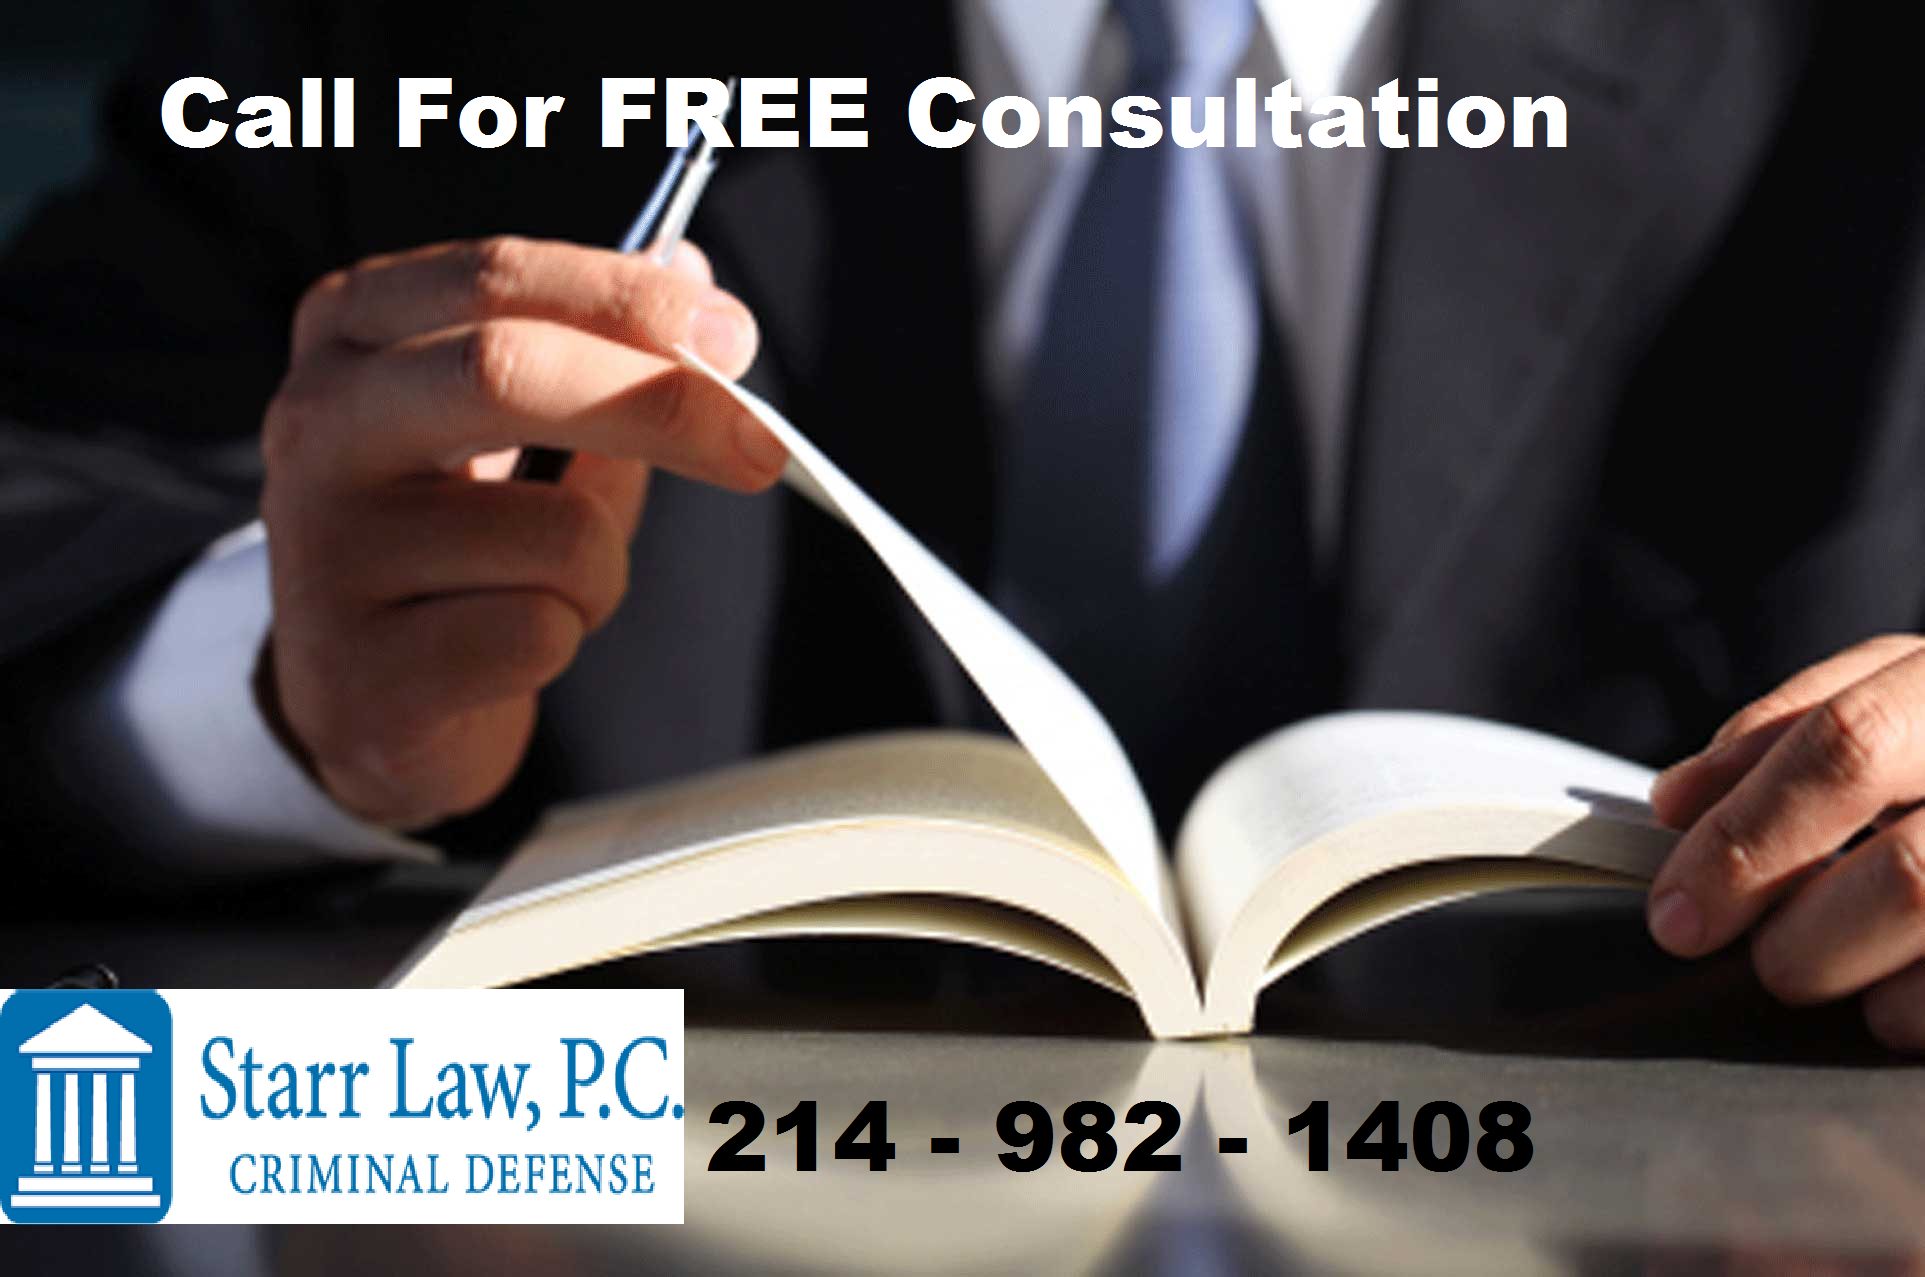 where to find Statutory Rape Lawyer Plano